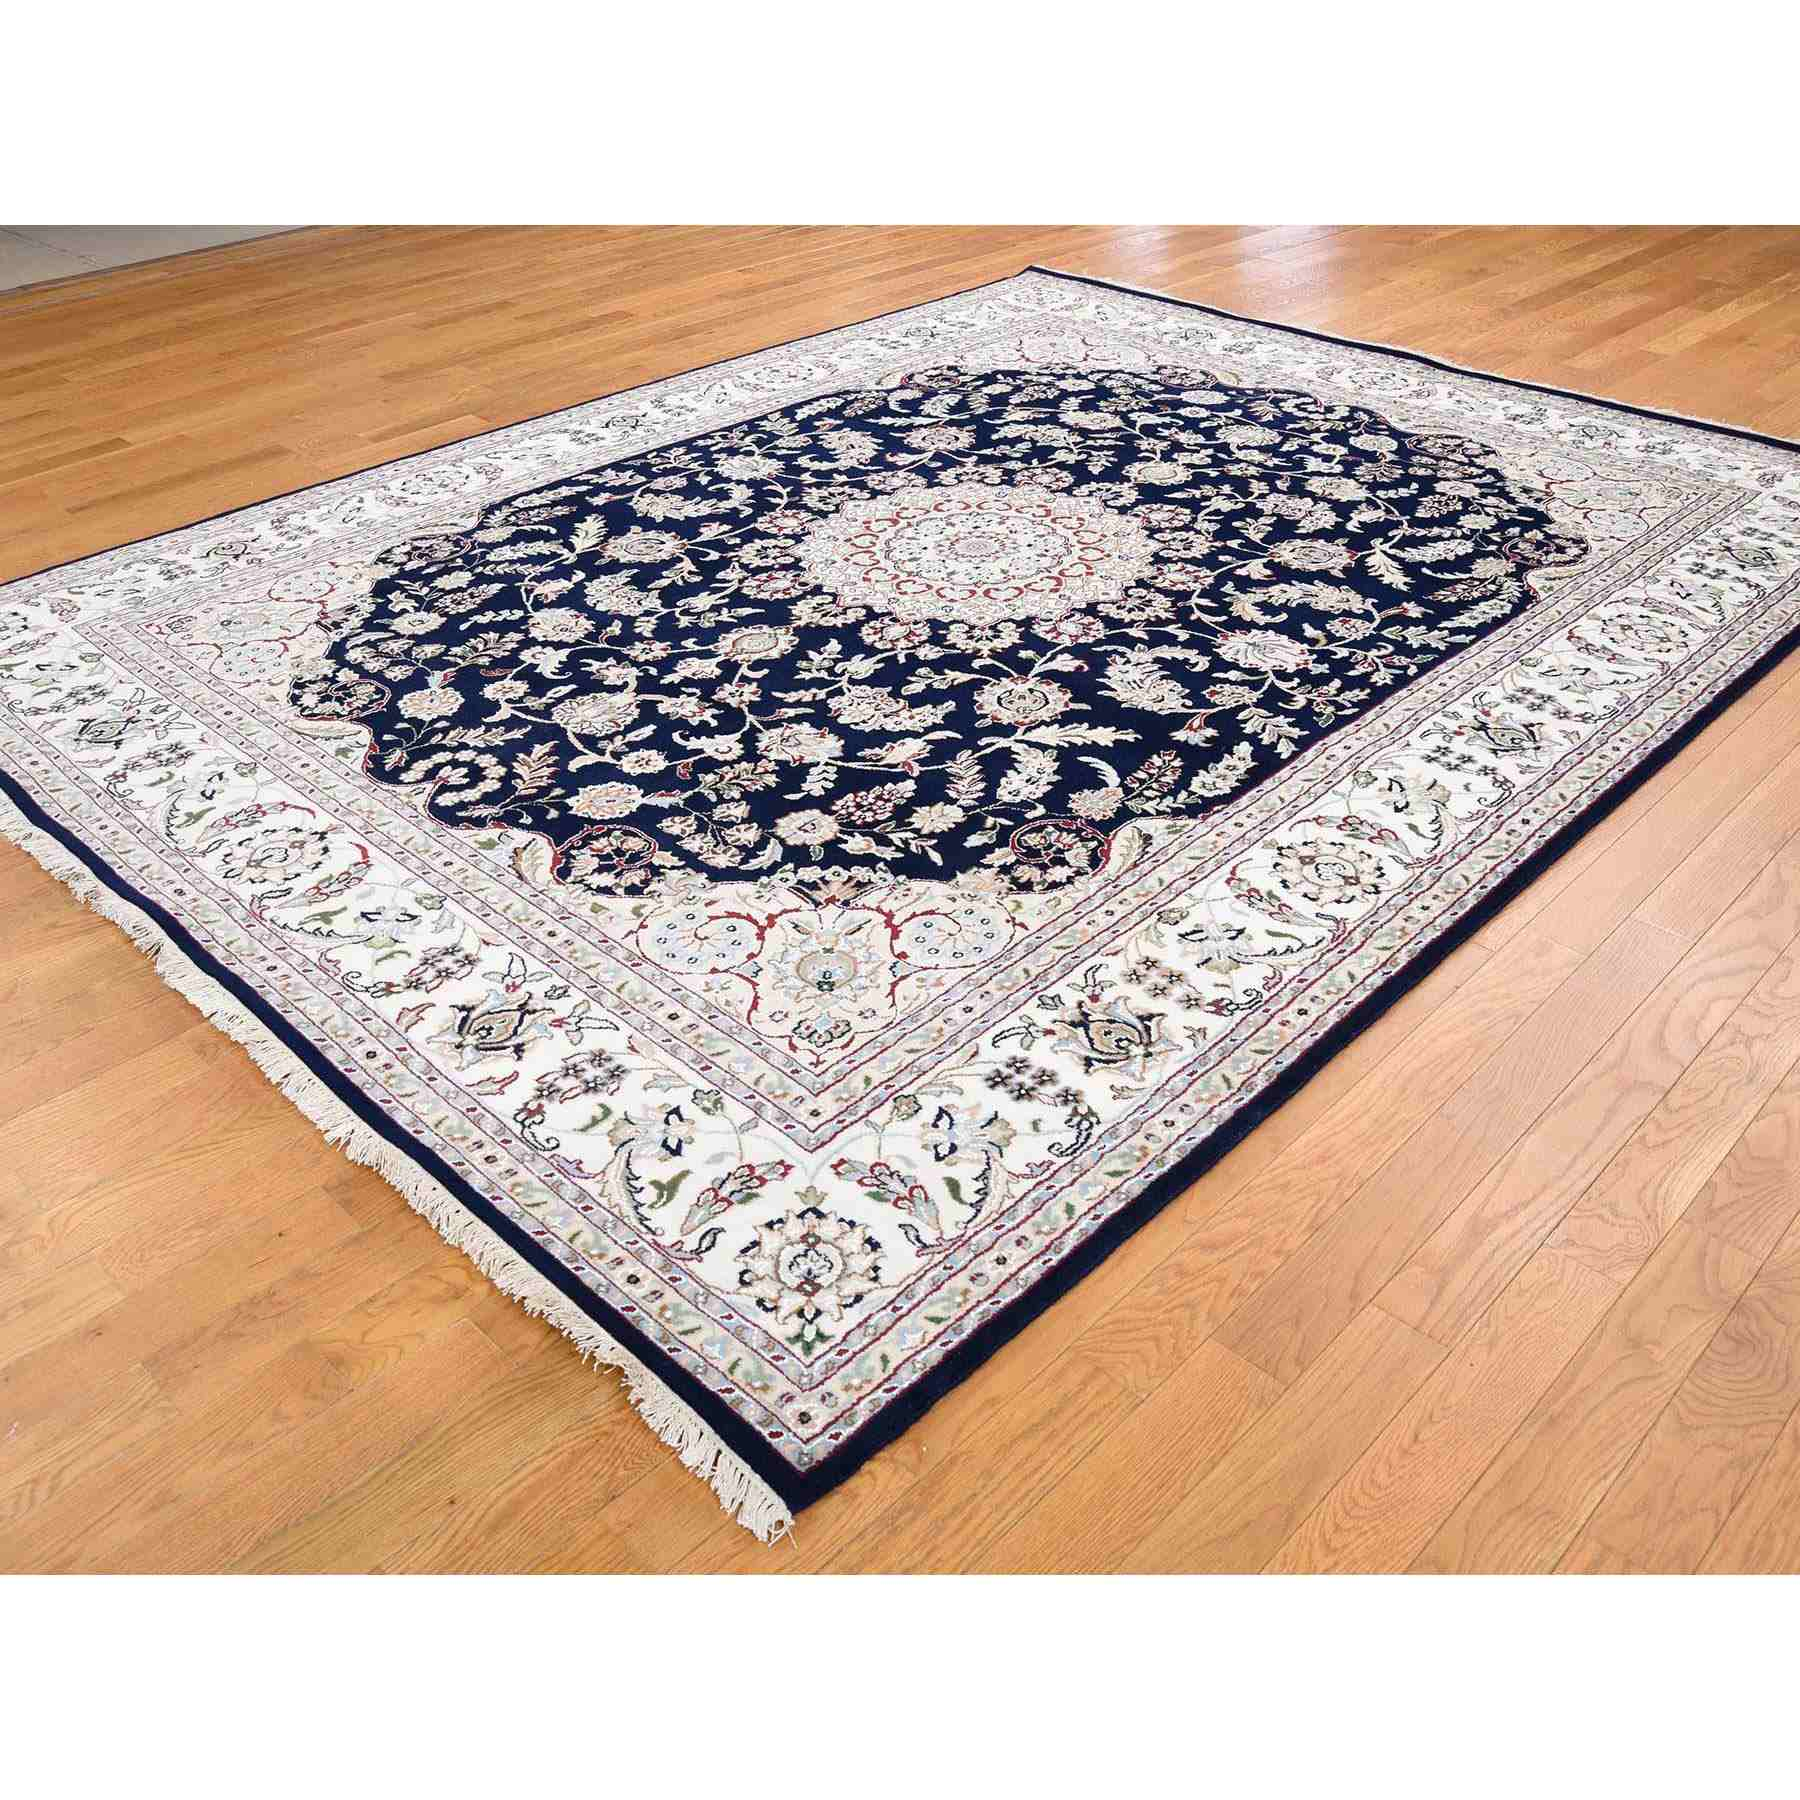 Fine-Oriental-Hand-Knotted-Rug-243990